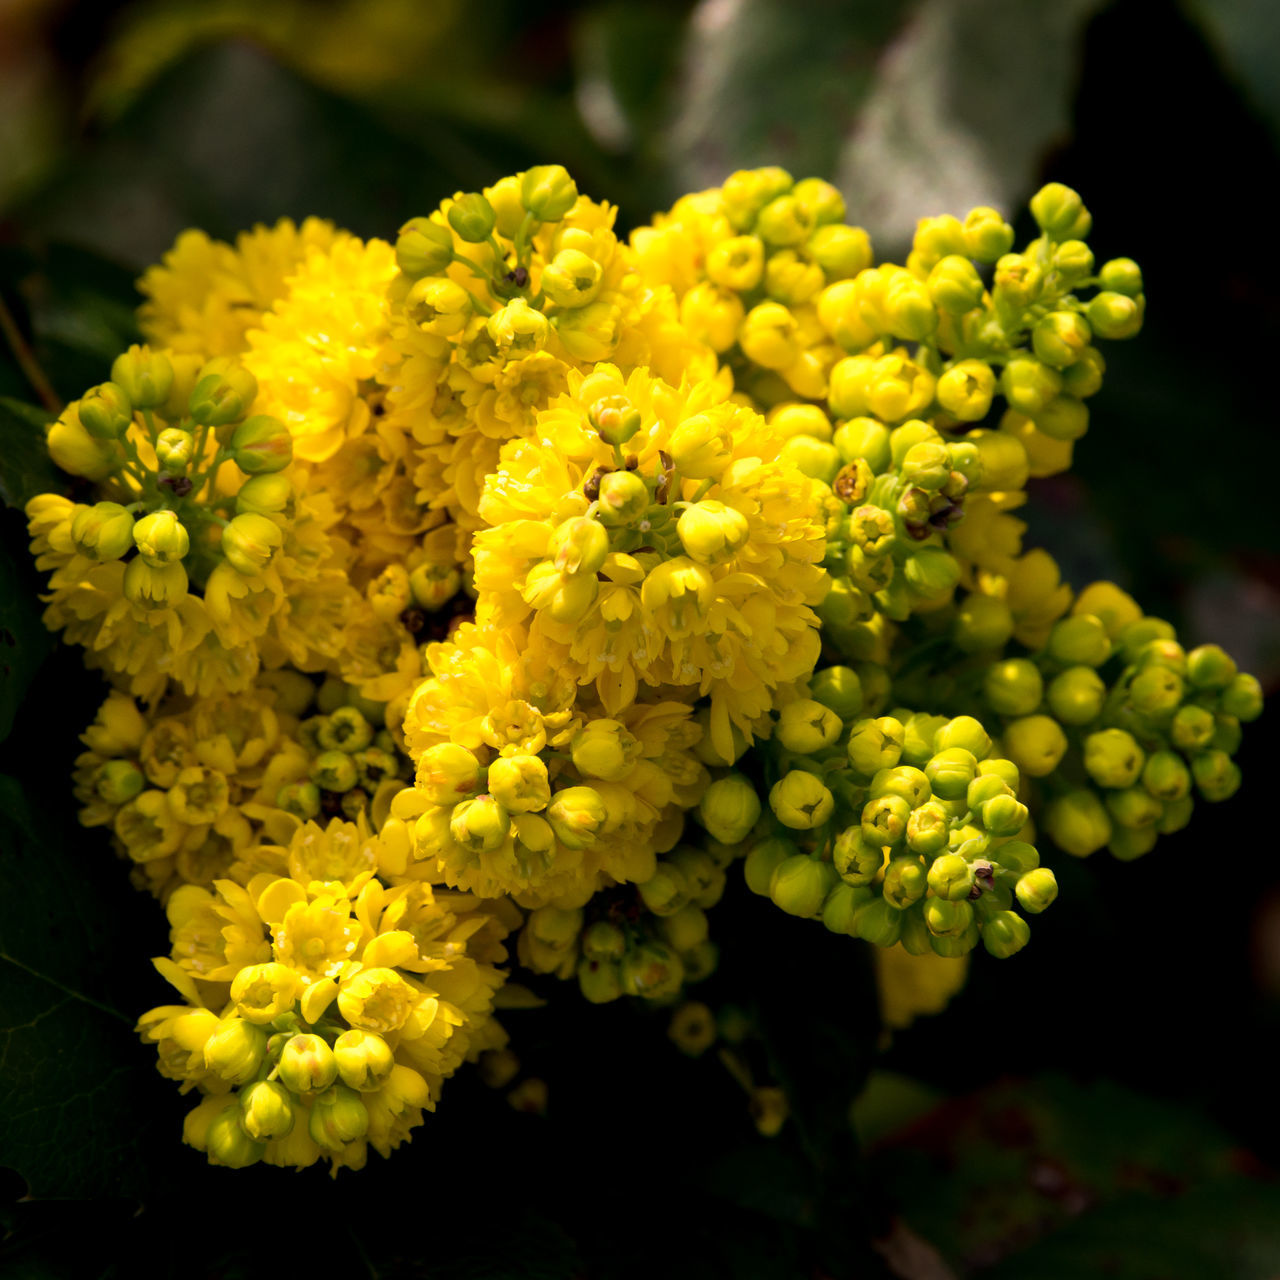 still portrait of my little mahonia Aquifolium Beauty In Nature Biology Blooming Blossom Close-up Common EyeEm Nature Lover Flower Flower Head Fragility Freshness Garden Garden Photography Macro Mahonia Nature No People Petal Portrait Spring Spring Flowers Springtime Still Life Yellow